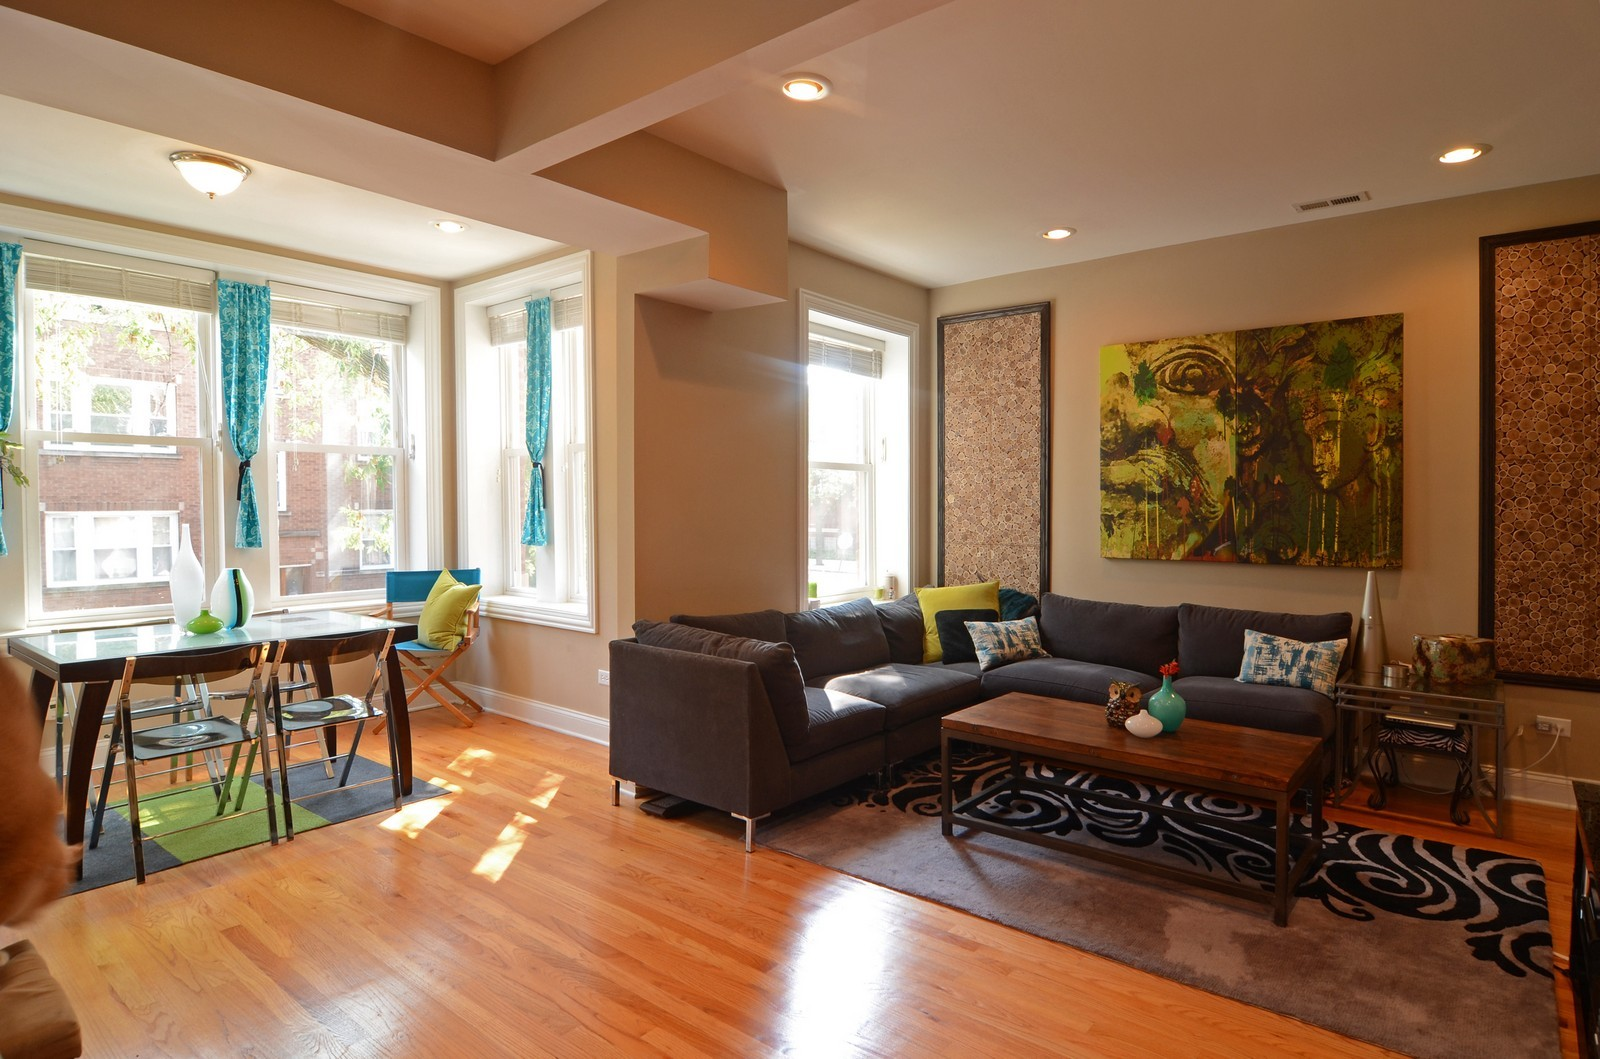 Real Estate Photography - 3516 W. Leland Ave, 1, Chicago, IL, 60625 - Living Room